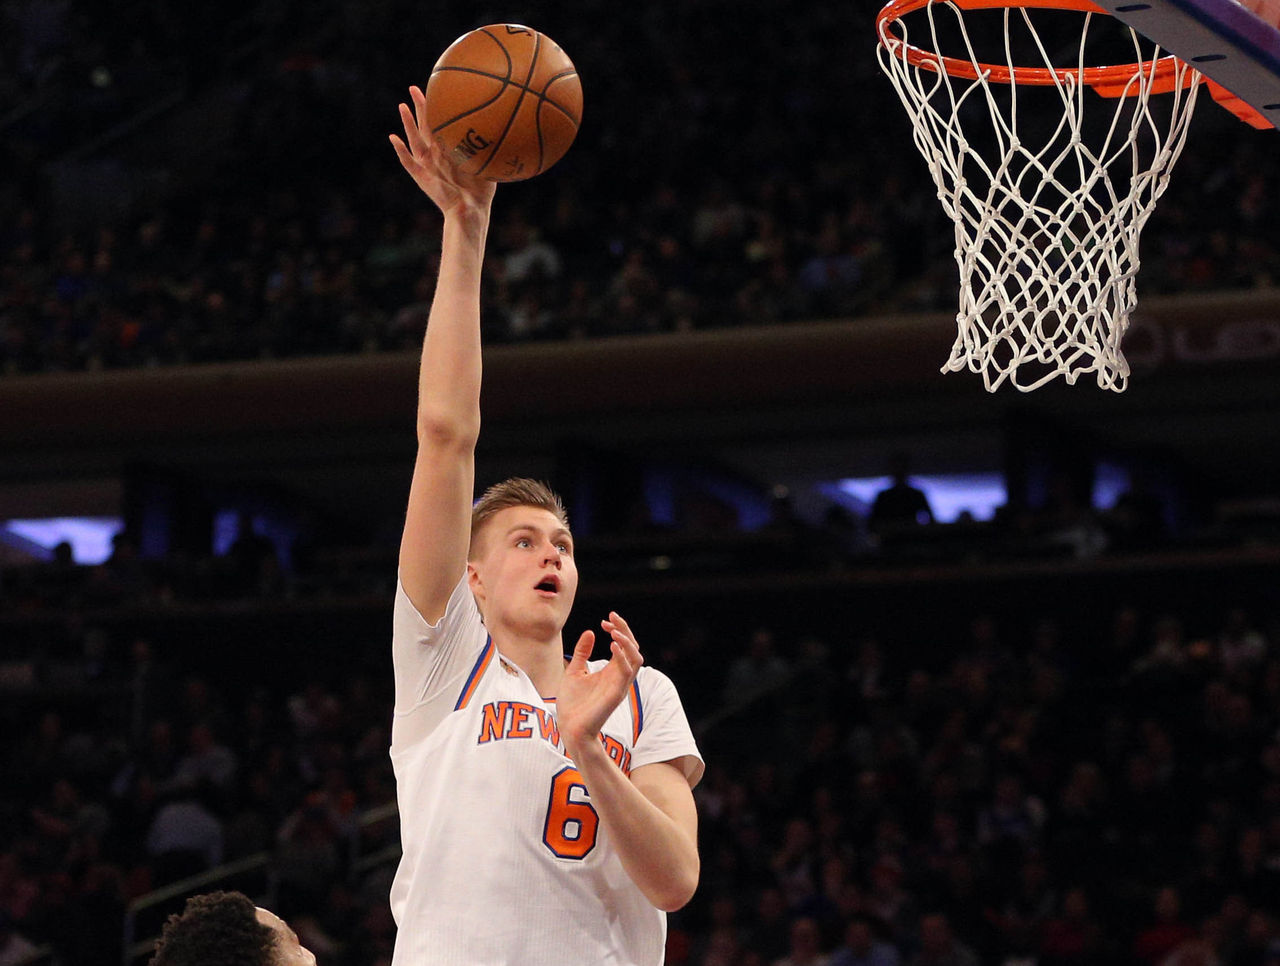 Cropped 2017 02 11t033512z 653175582 nocid rtrmadp 3 nba denver nuggets at new york knicks